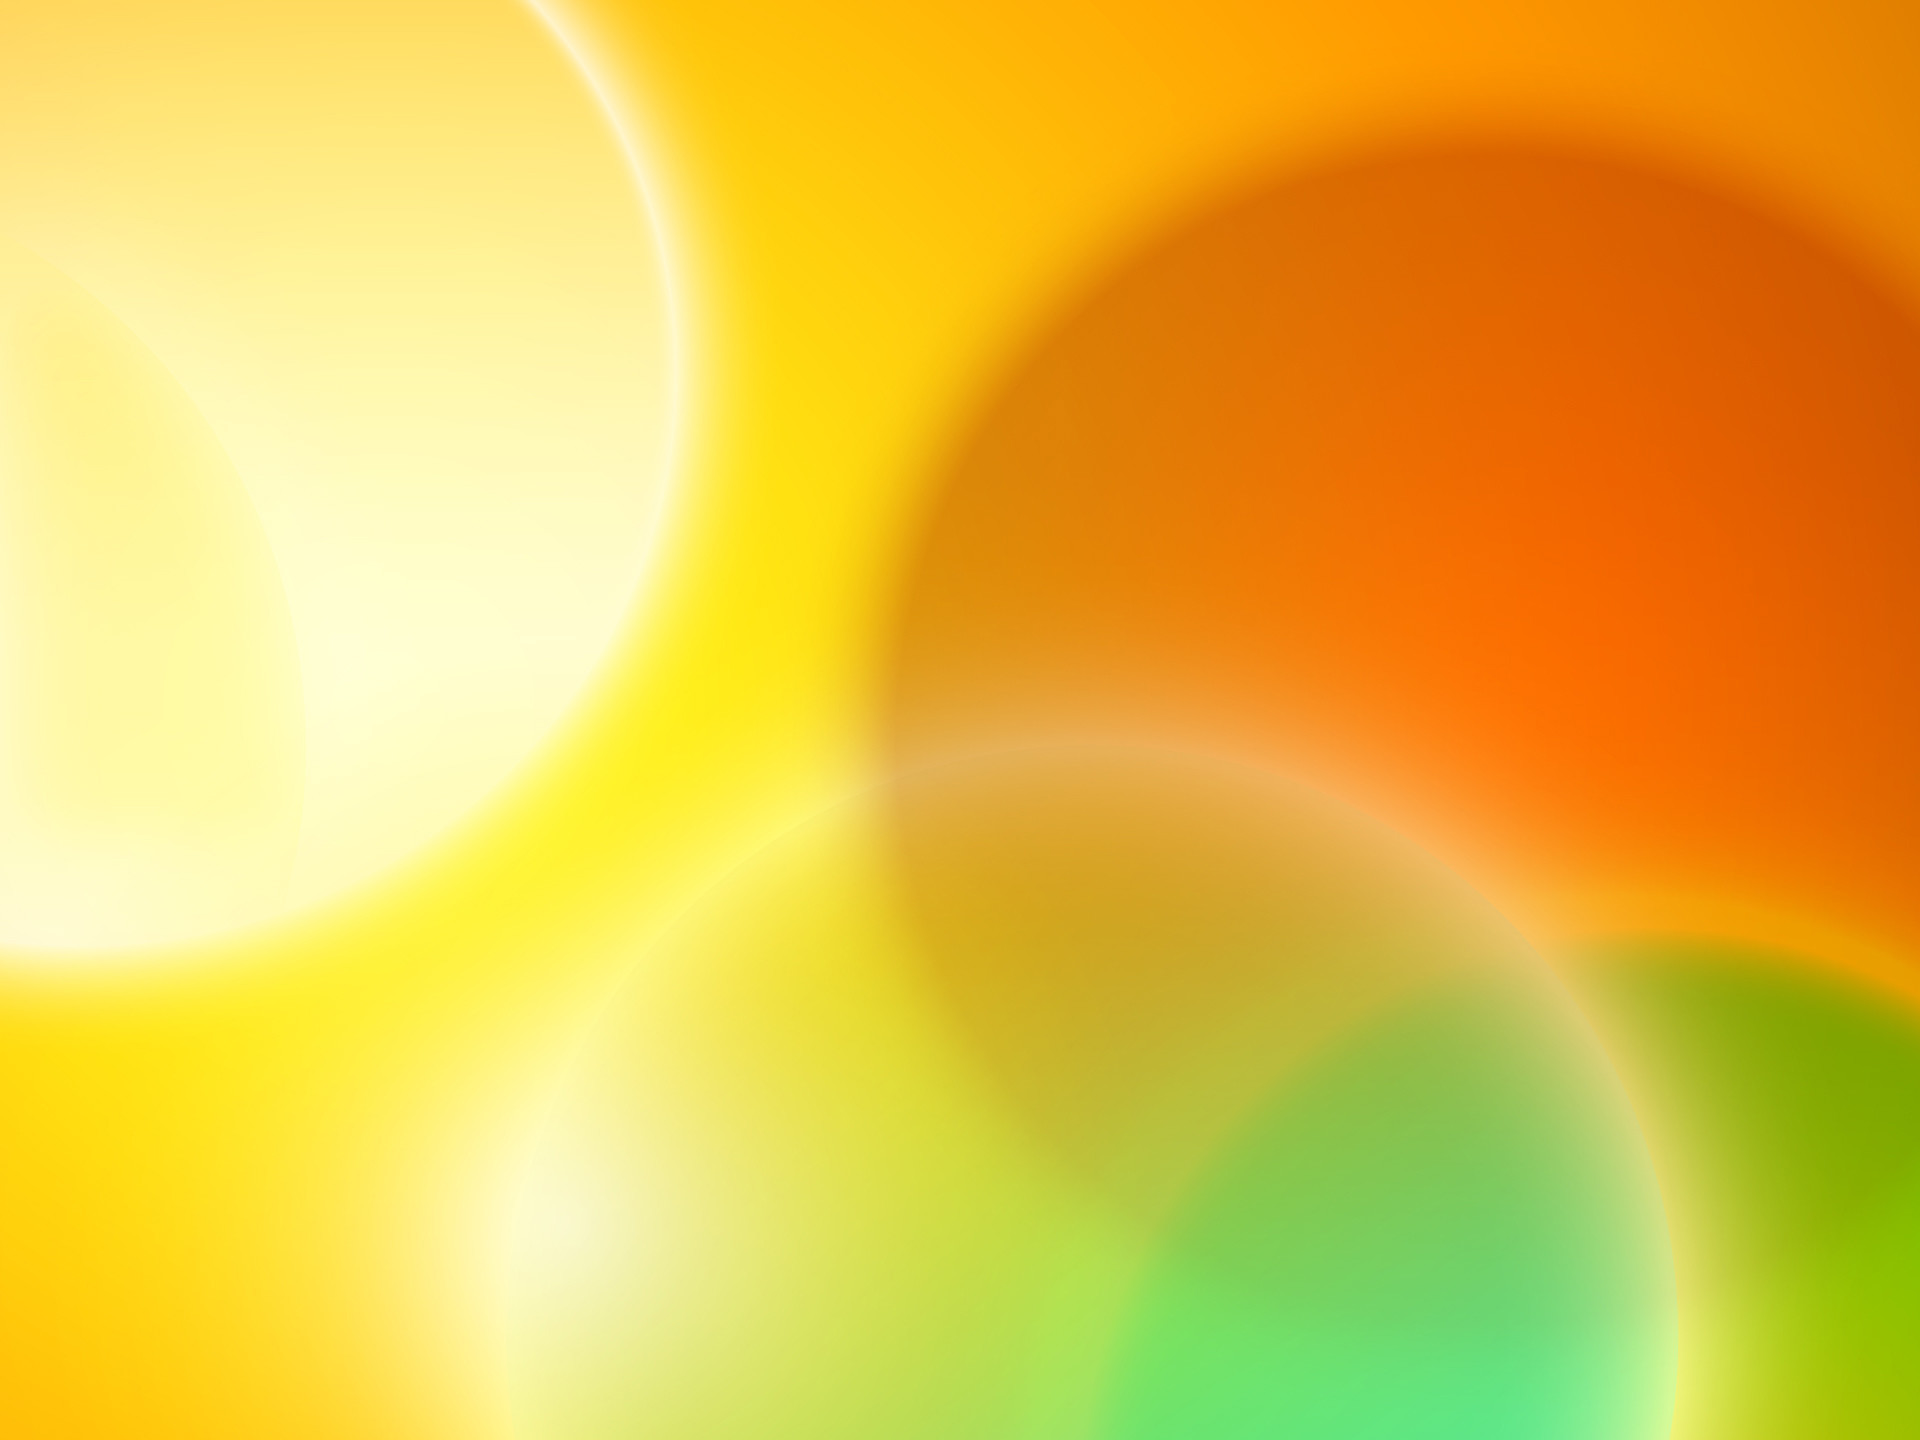 Res: 1920x1440, Image: HQFX Green And Orange Backgrounds, by Mergidele